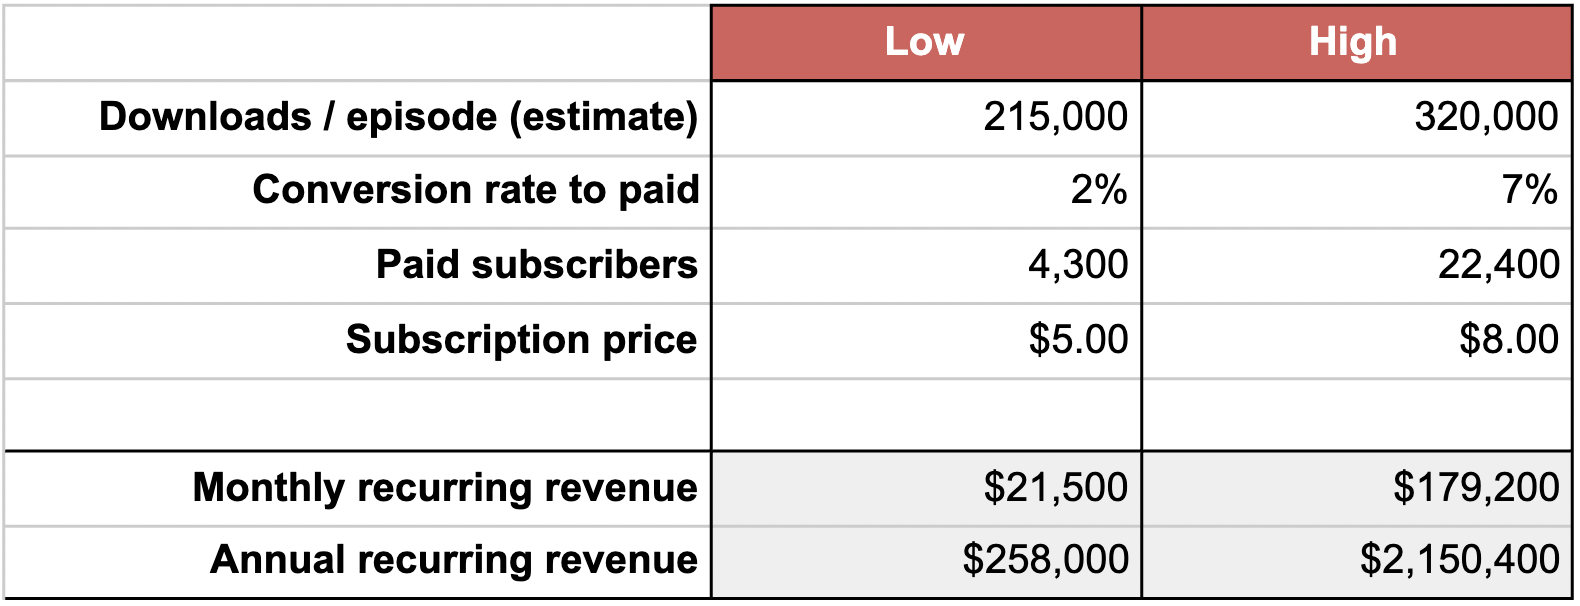 Chart of Revenue Projections for Sex with Emily podcast